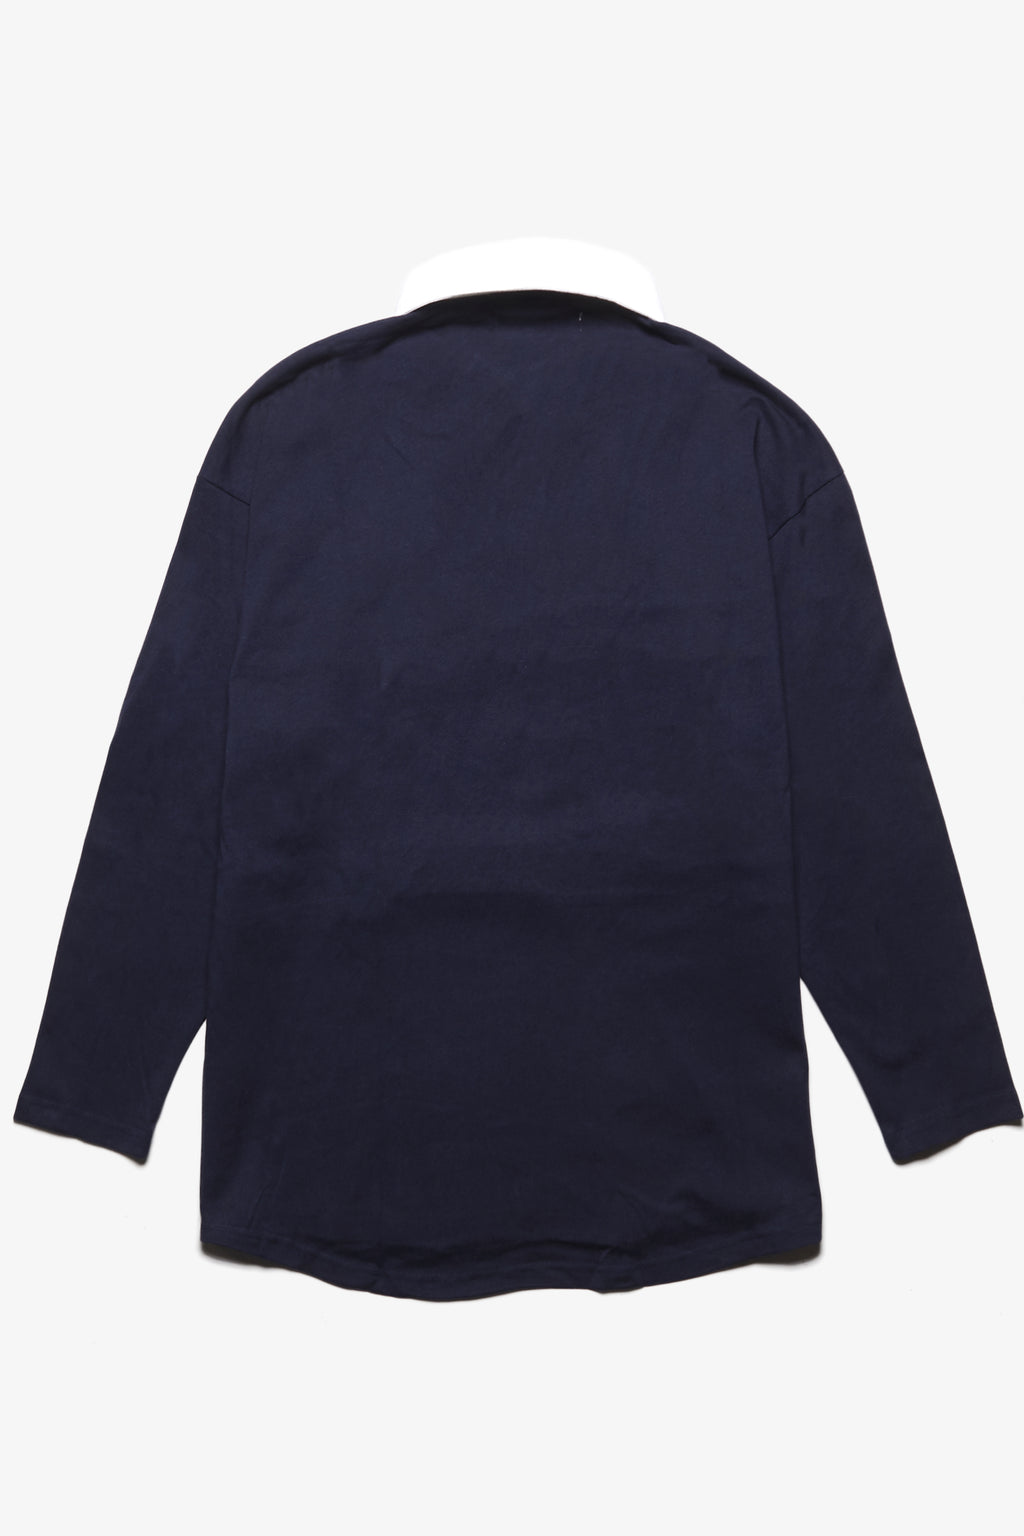 Overall Union - Field Rugby Shirt - Navy